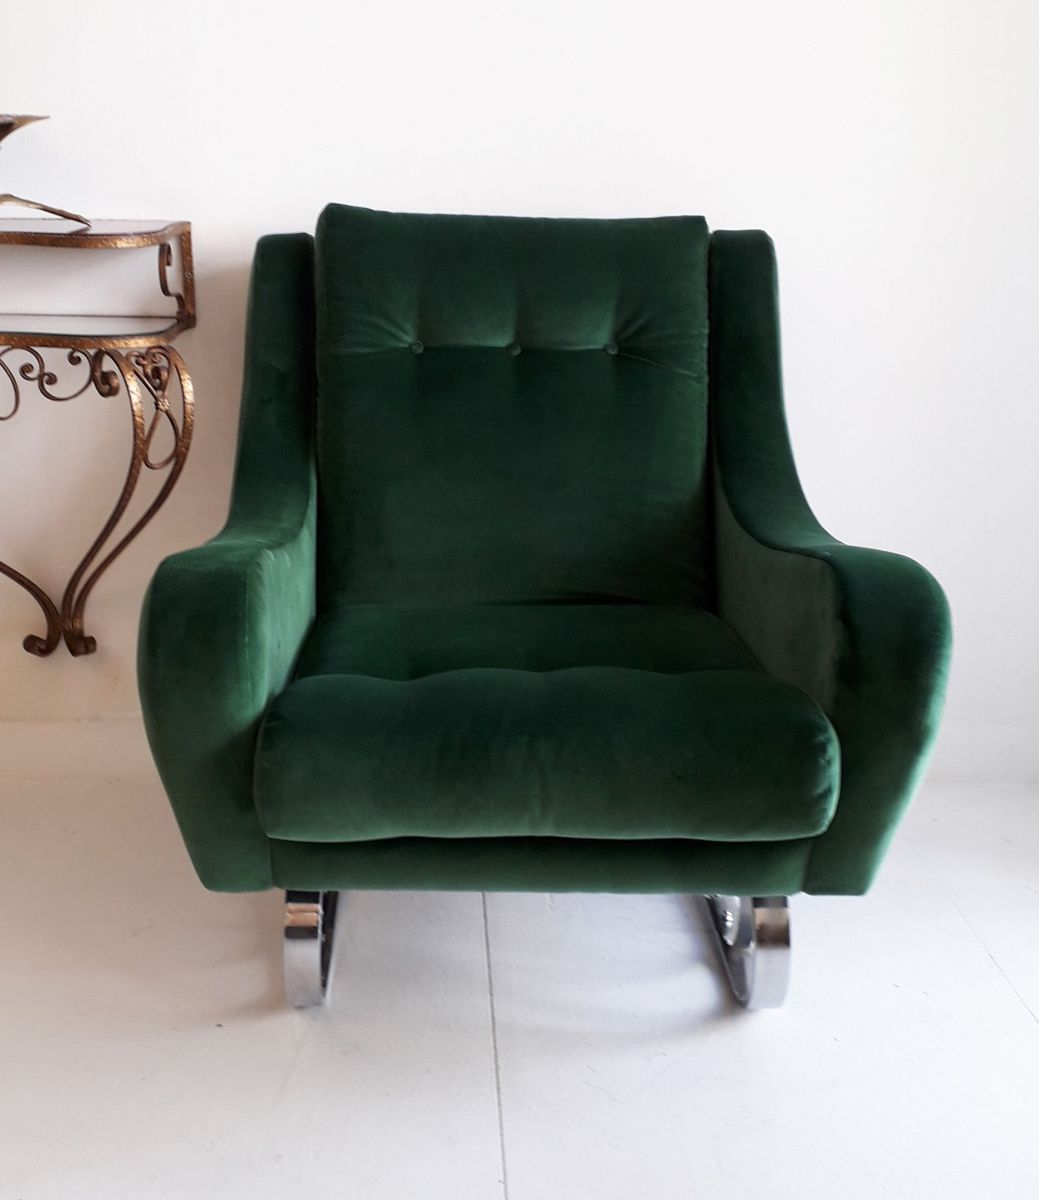 emerald green velvet chair stokke tripp trapp high complete 4 piece bundle french cantilever lounge chairs